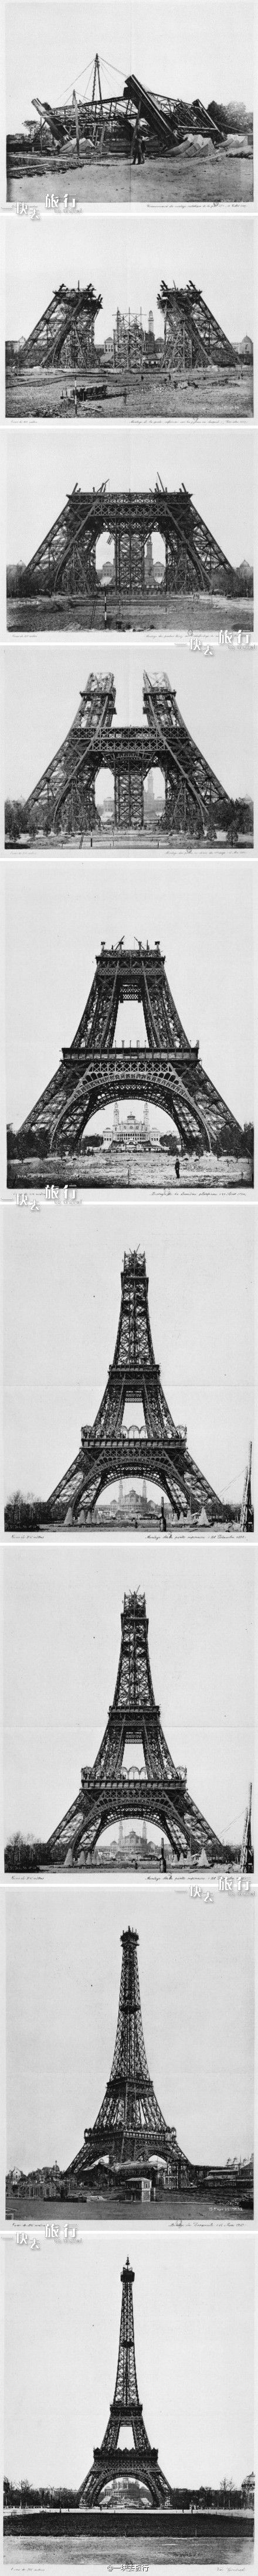 Construcción de la Torre Eiffel  Building of the Eiffel Tower a true reflection.